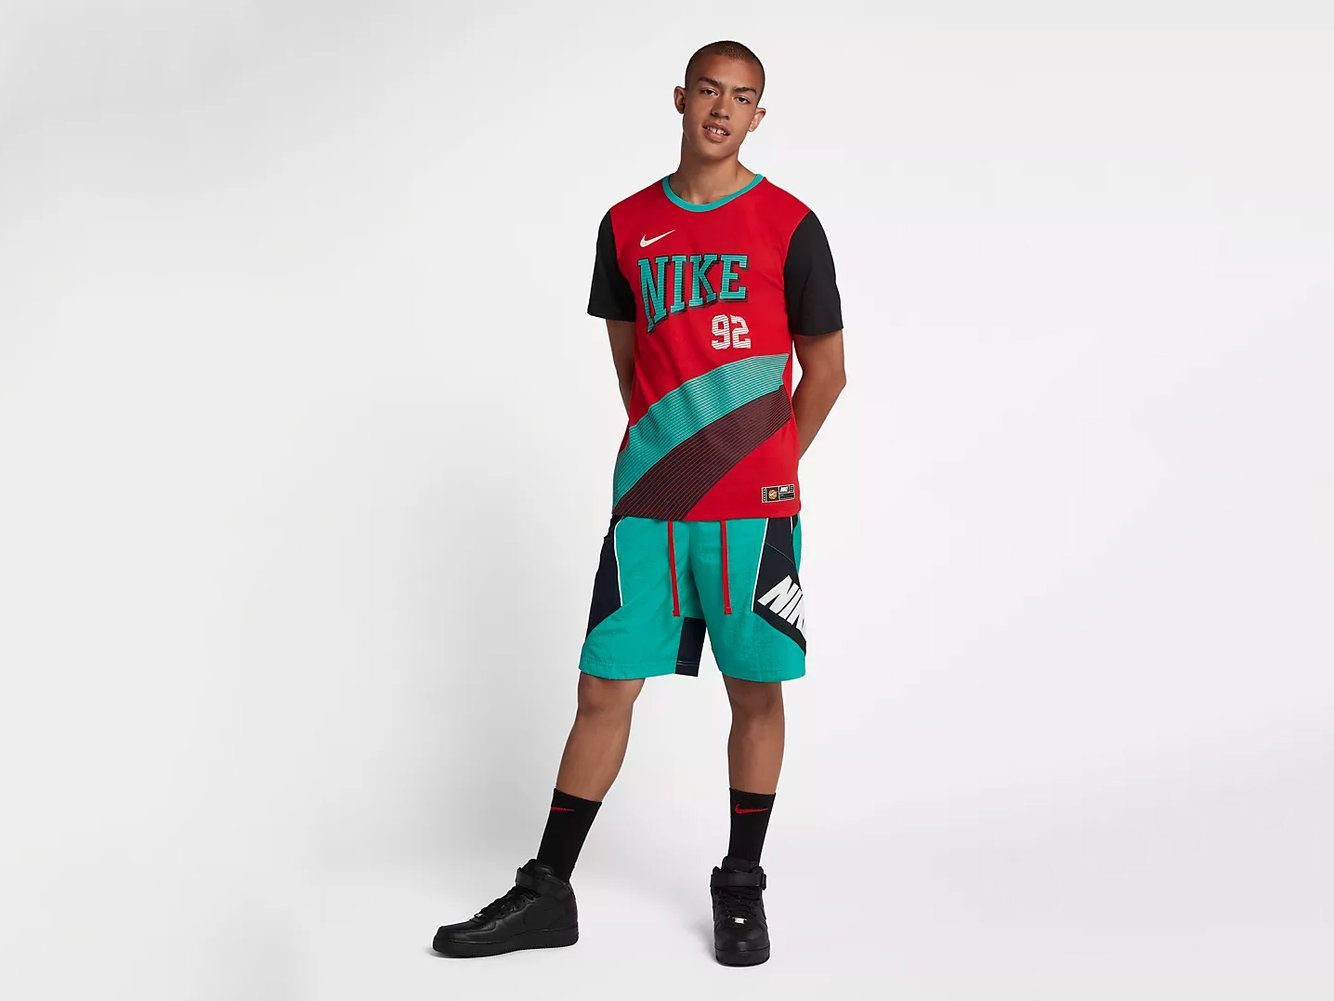 Nike S New Throwback Collection Features Old School 90s Inspired Sneakers And Clothing These Are The Best Styles Nike Nike Men Throwback